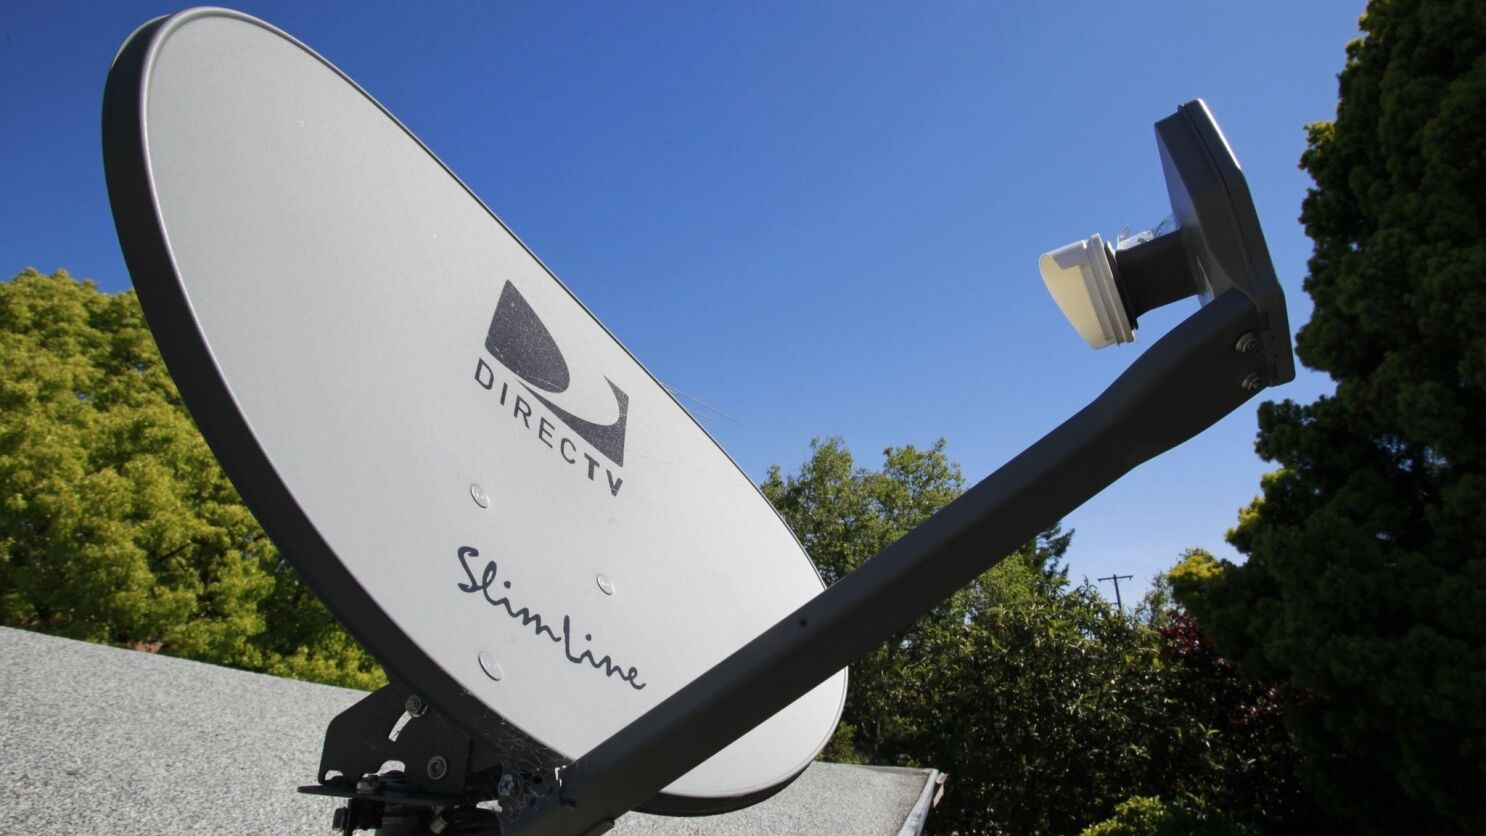 Directv Says Battery Cells On One Of Its Satellites May Blow Up Los Angeles Times